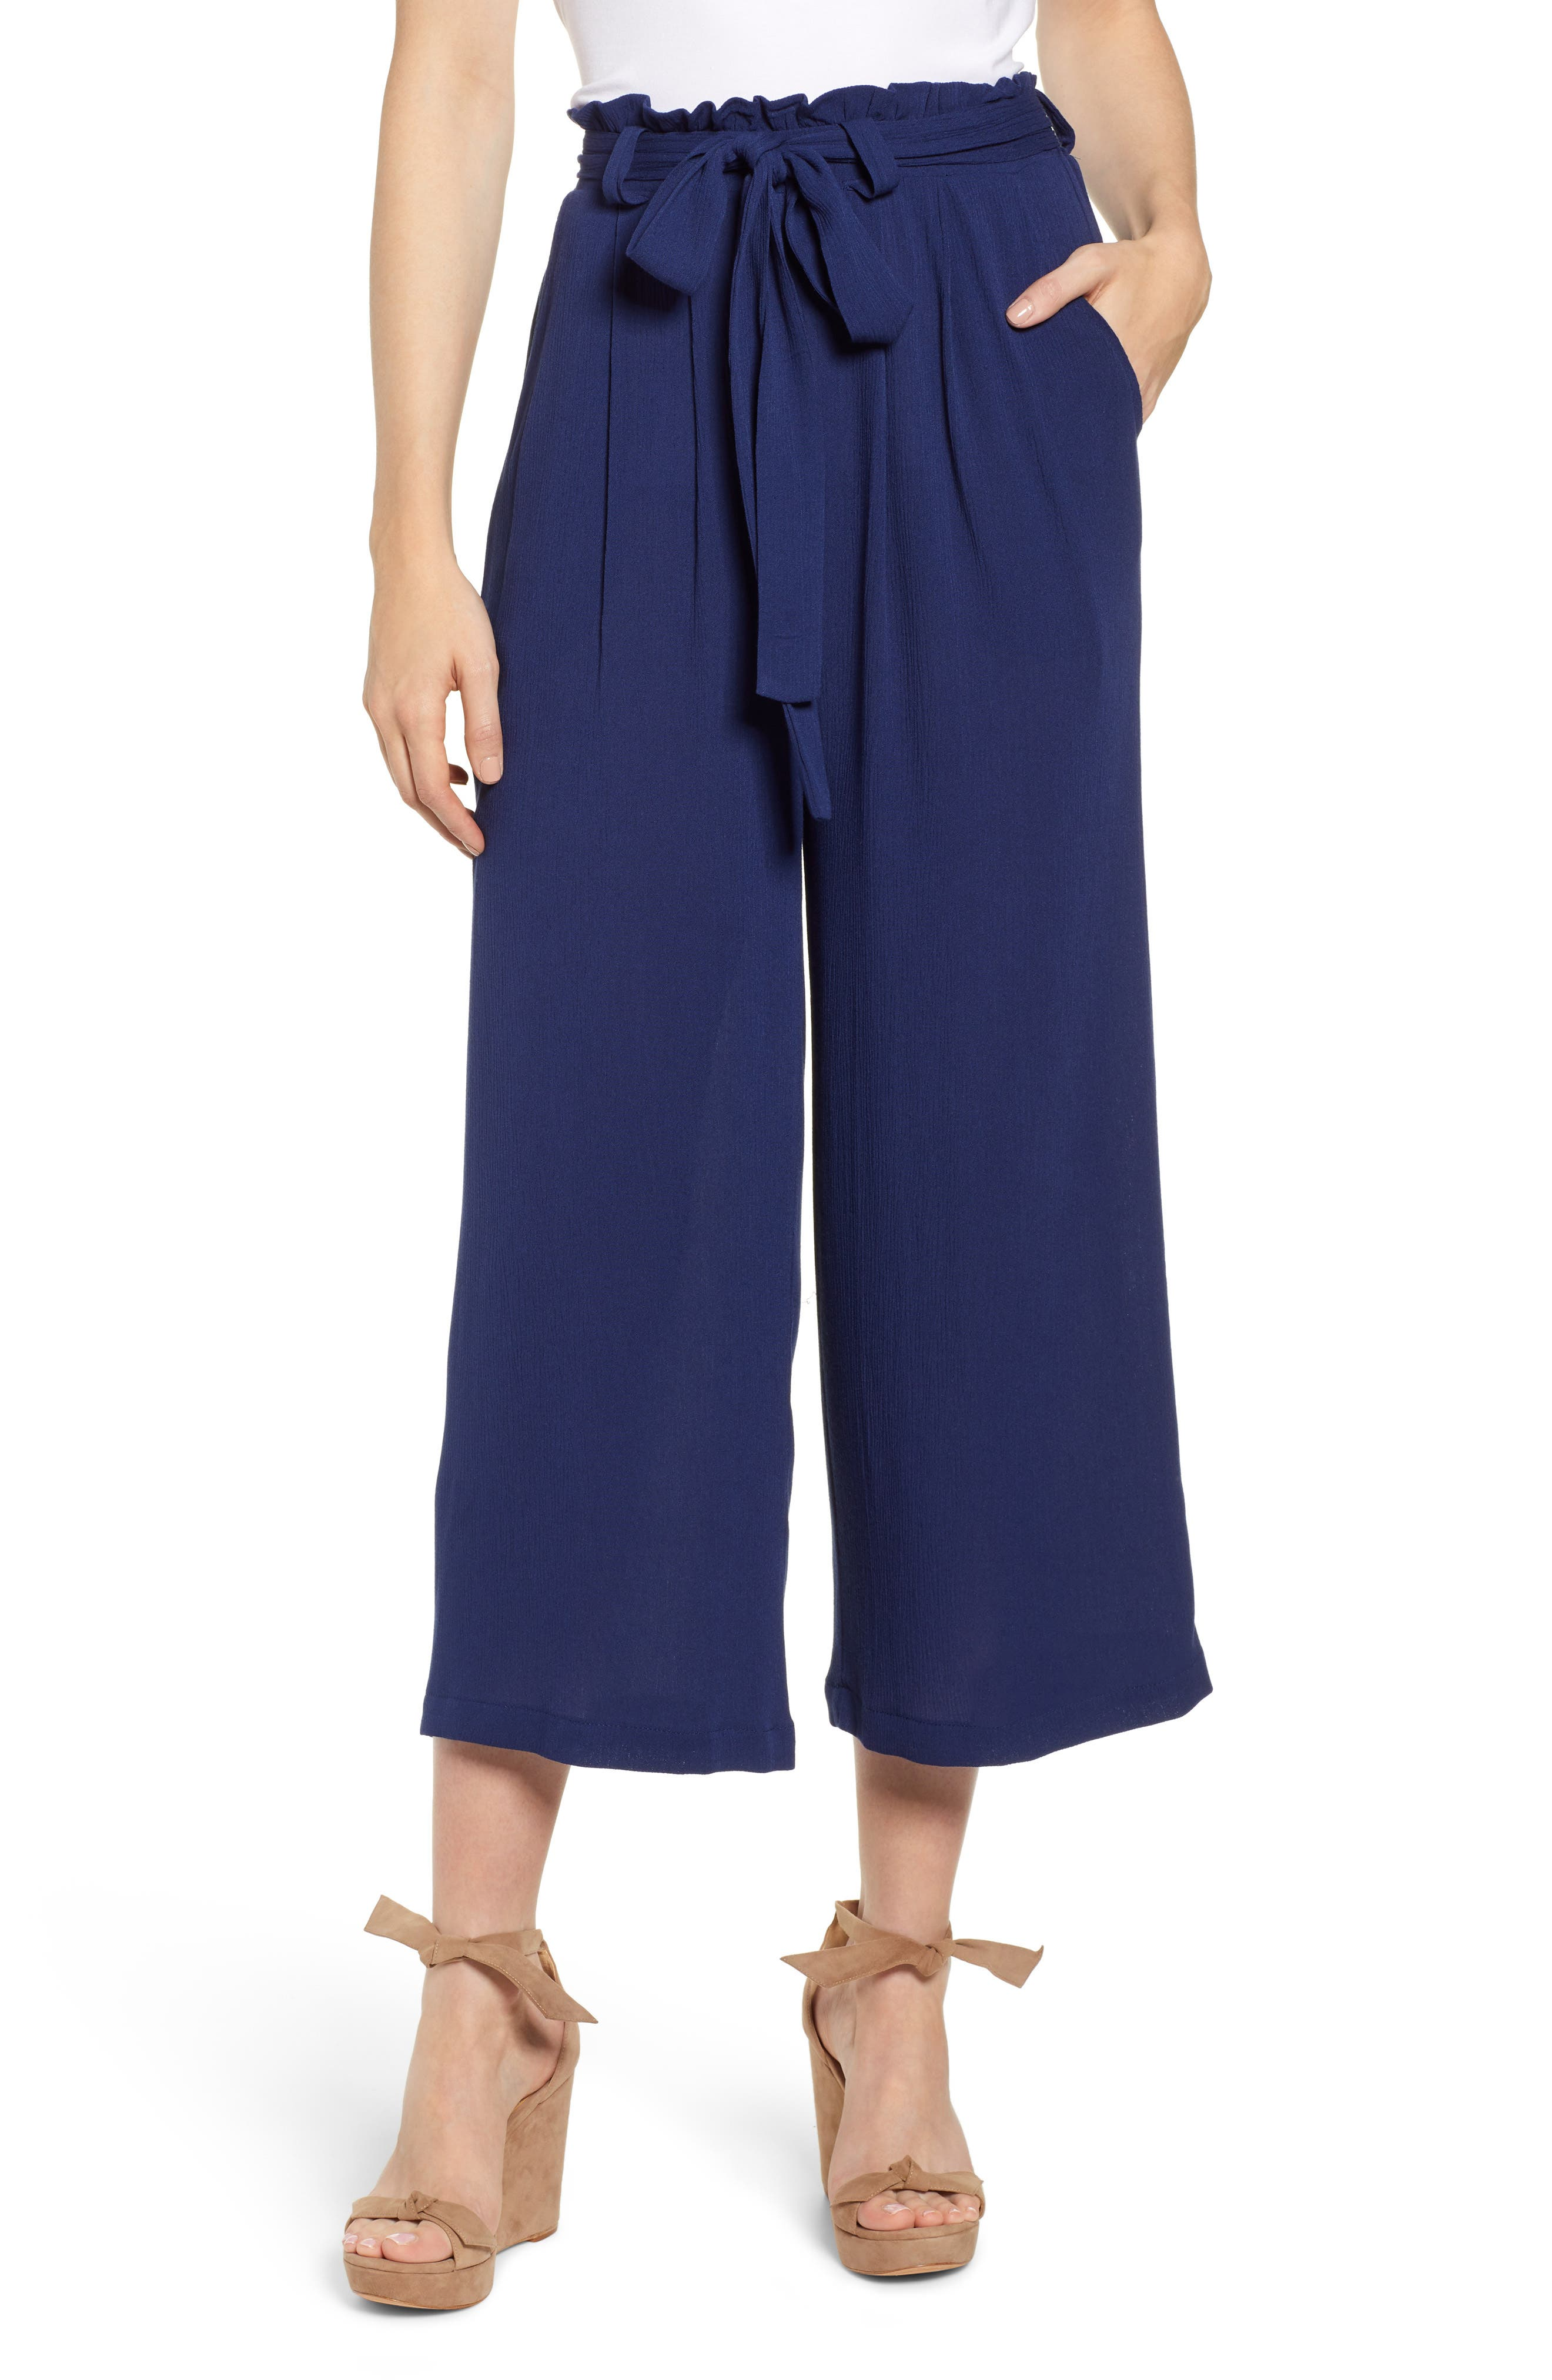 GIBSON x Hi Sugarplum! Sedona Wide Leg Ankle Pants, Main, color, CHAMBRAY SOLID